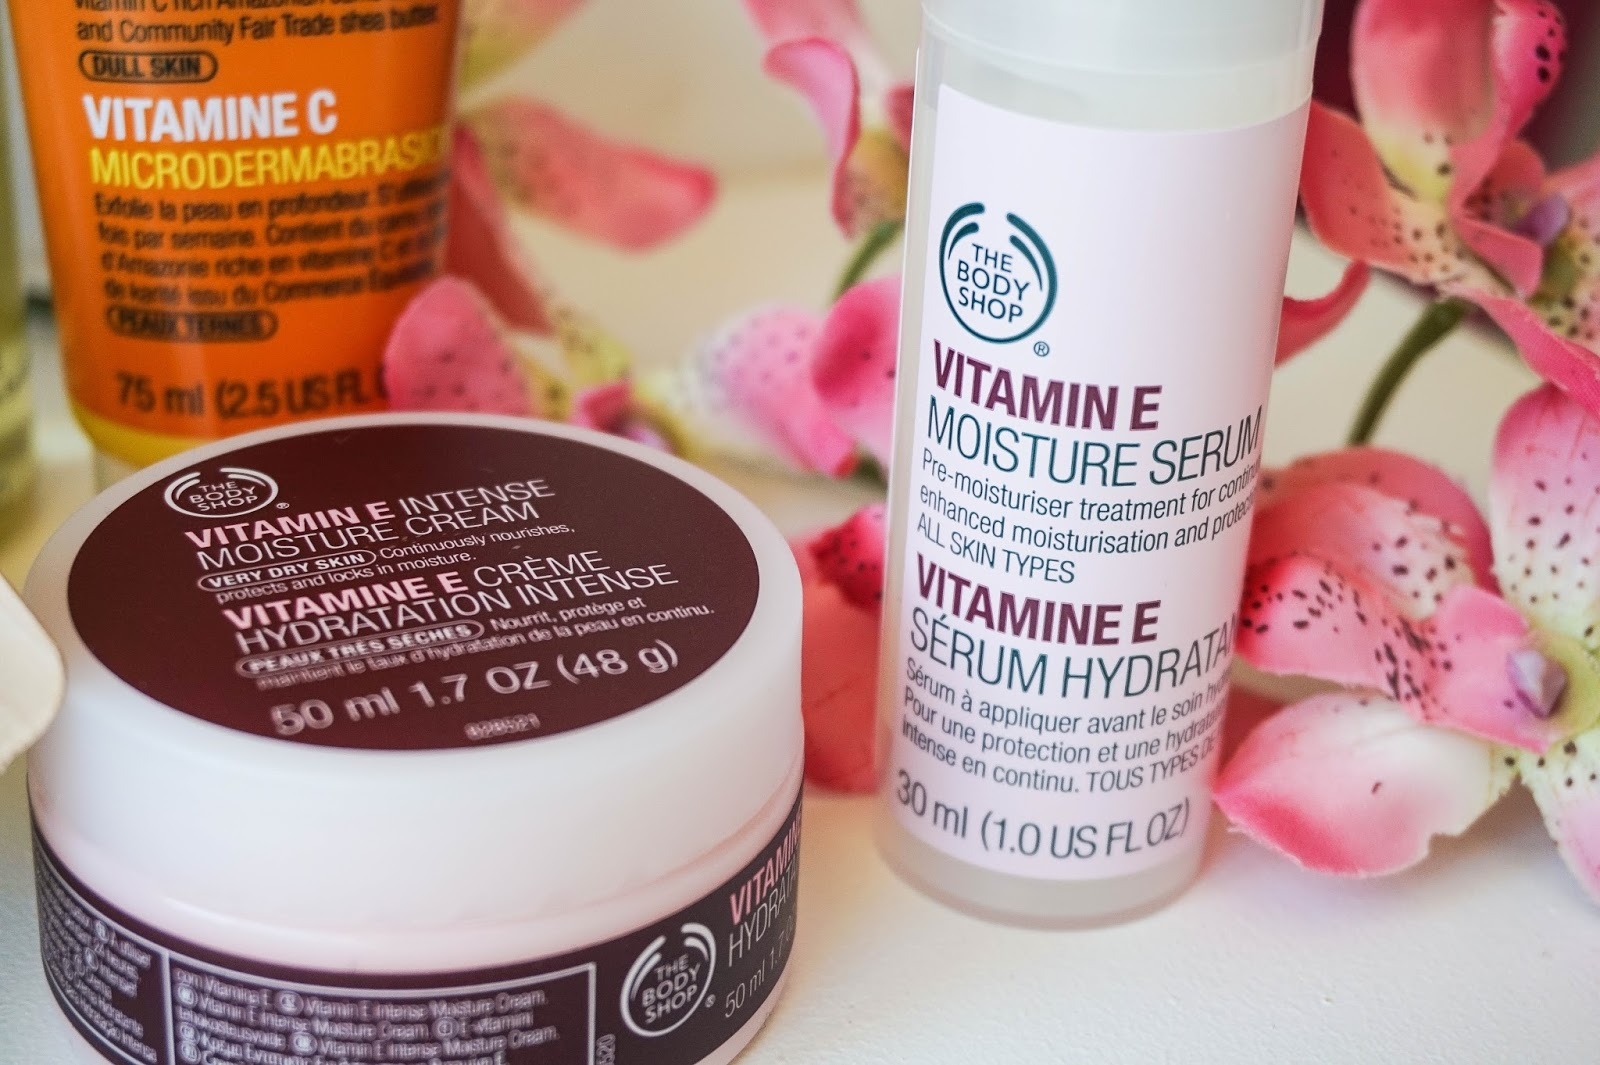 The Body Shop, Vitamin C Microdermabrasion, Glazed Apple Bath Jelly, Camomile Silky Cleansing Oil, Vitamin E Moisture Serum, Vitamin E Intense Moisture Cream